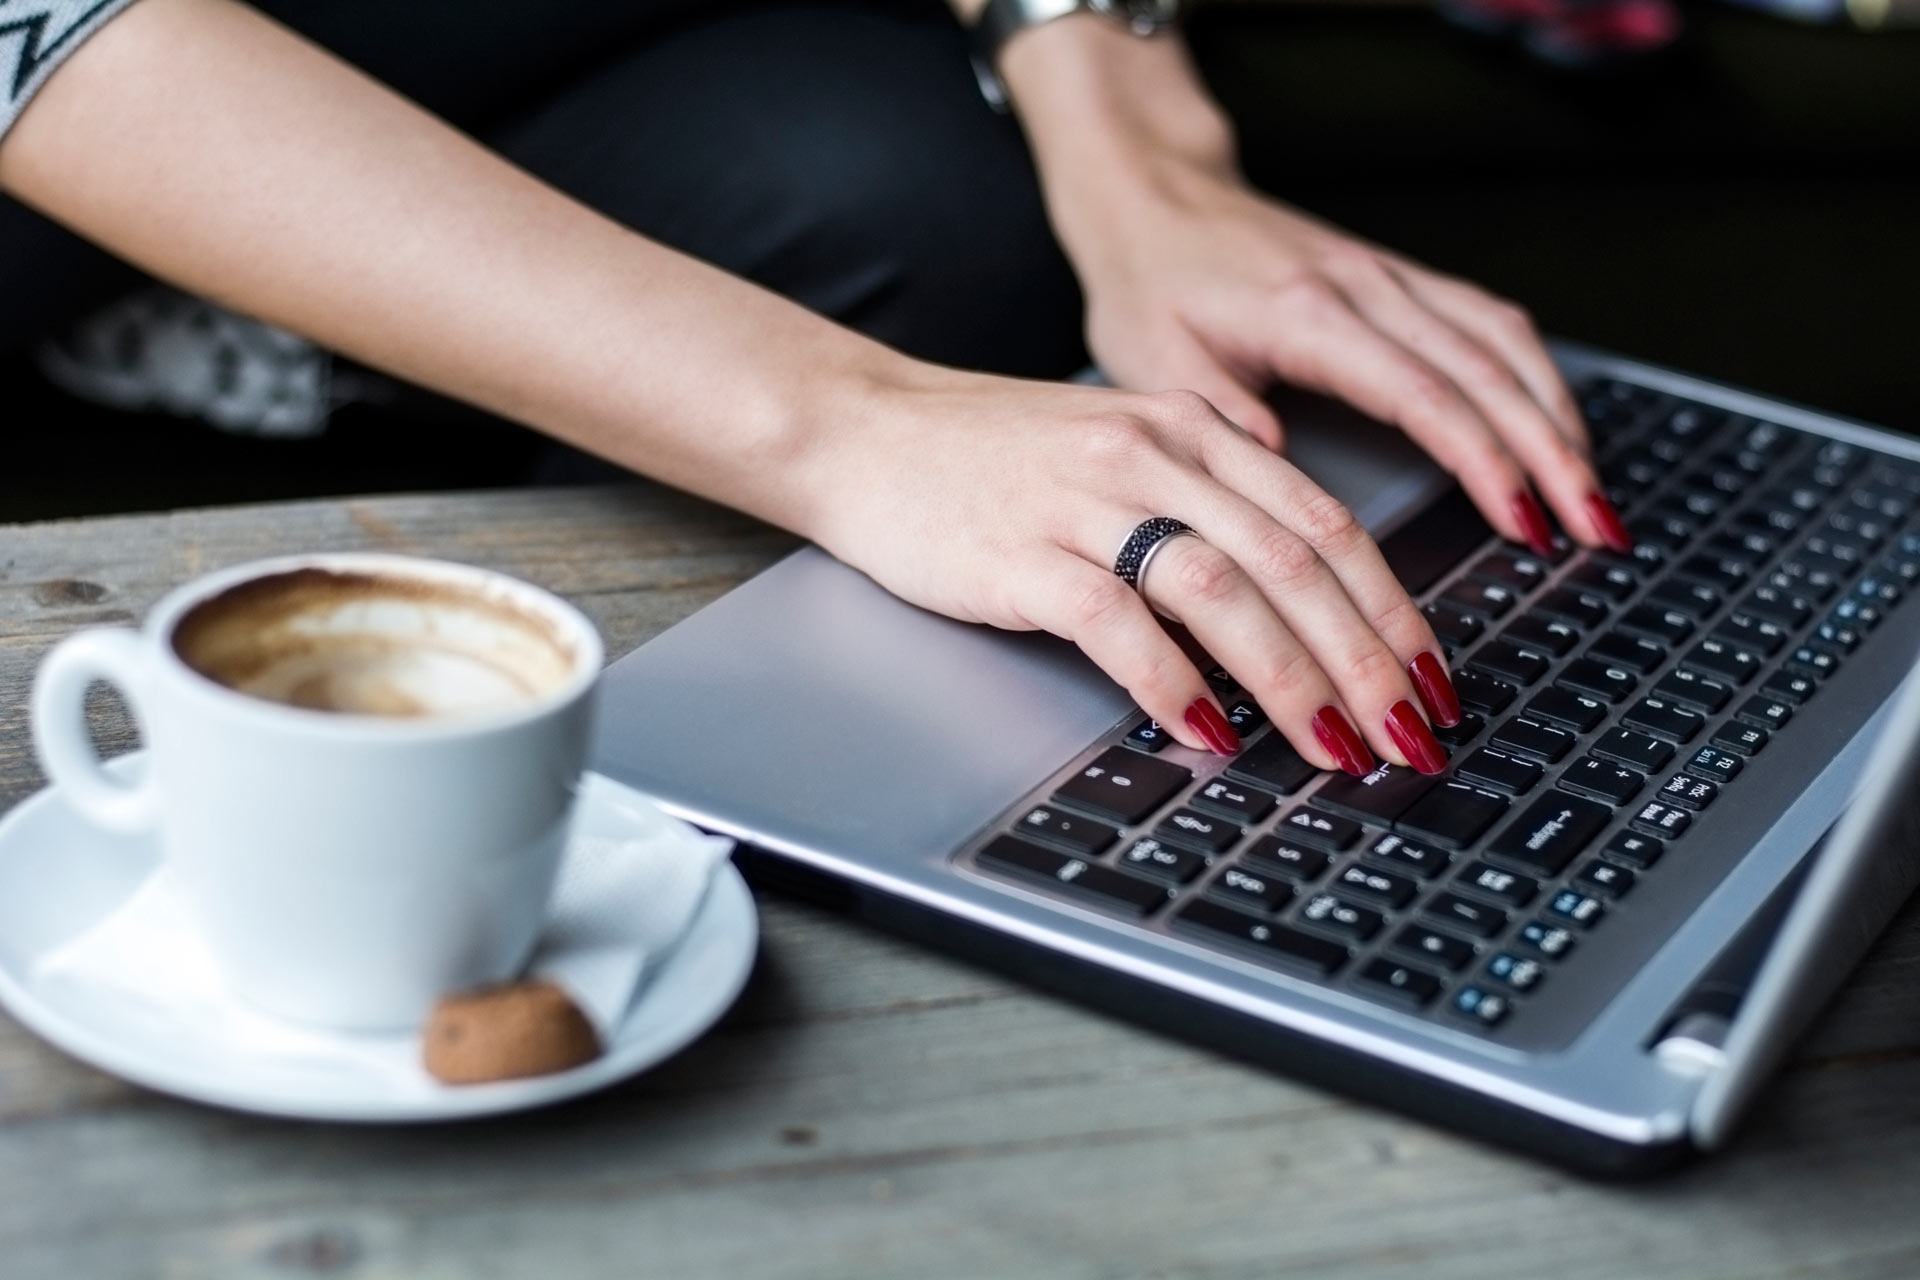 adult-health-best-adhd-blogs-article-4842-woman-typing-laptop-ts